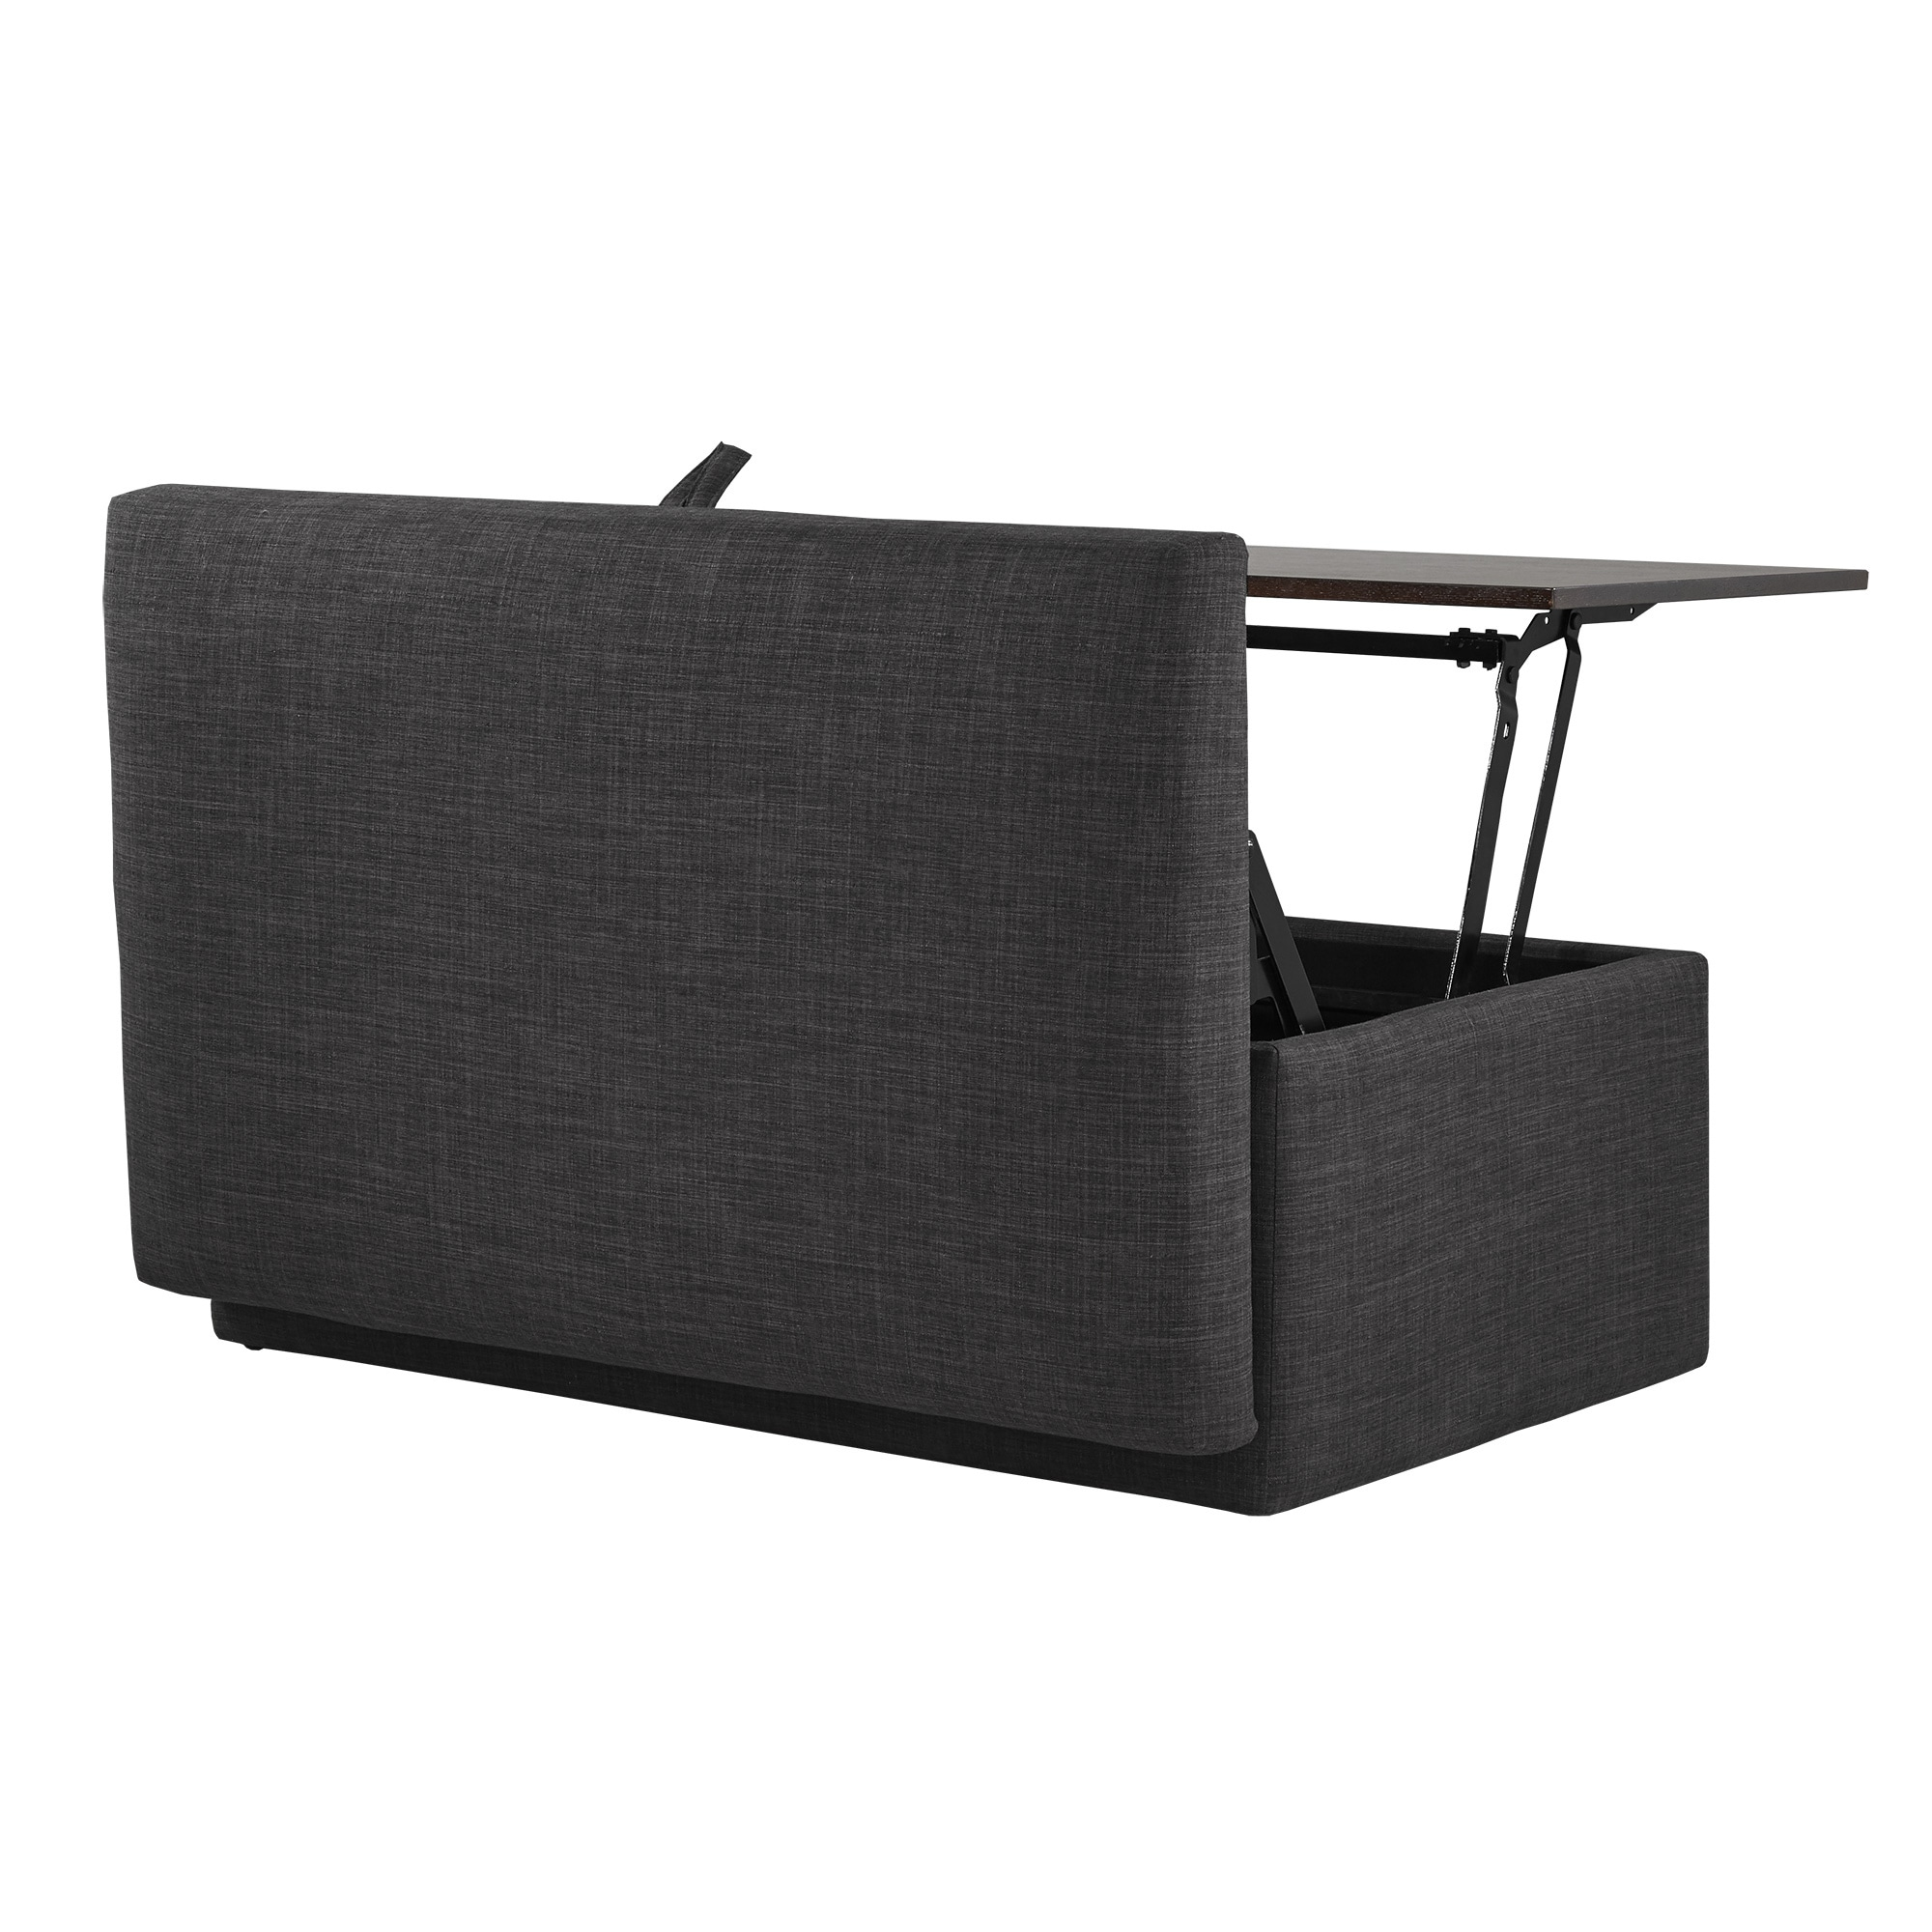 Shop Landen Lift Top Upholstered Storage Ottoman Coffee Table By